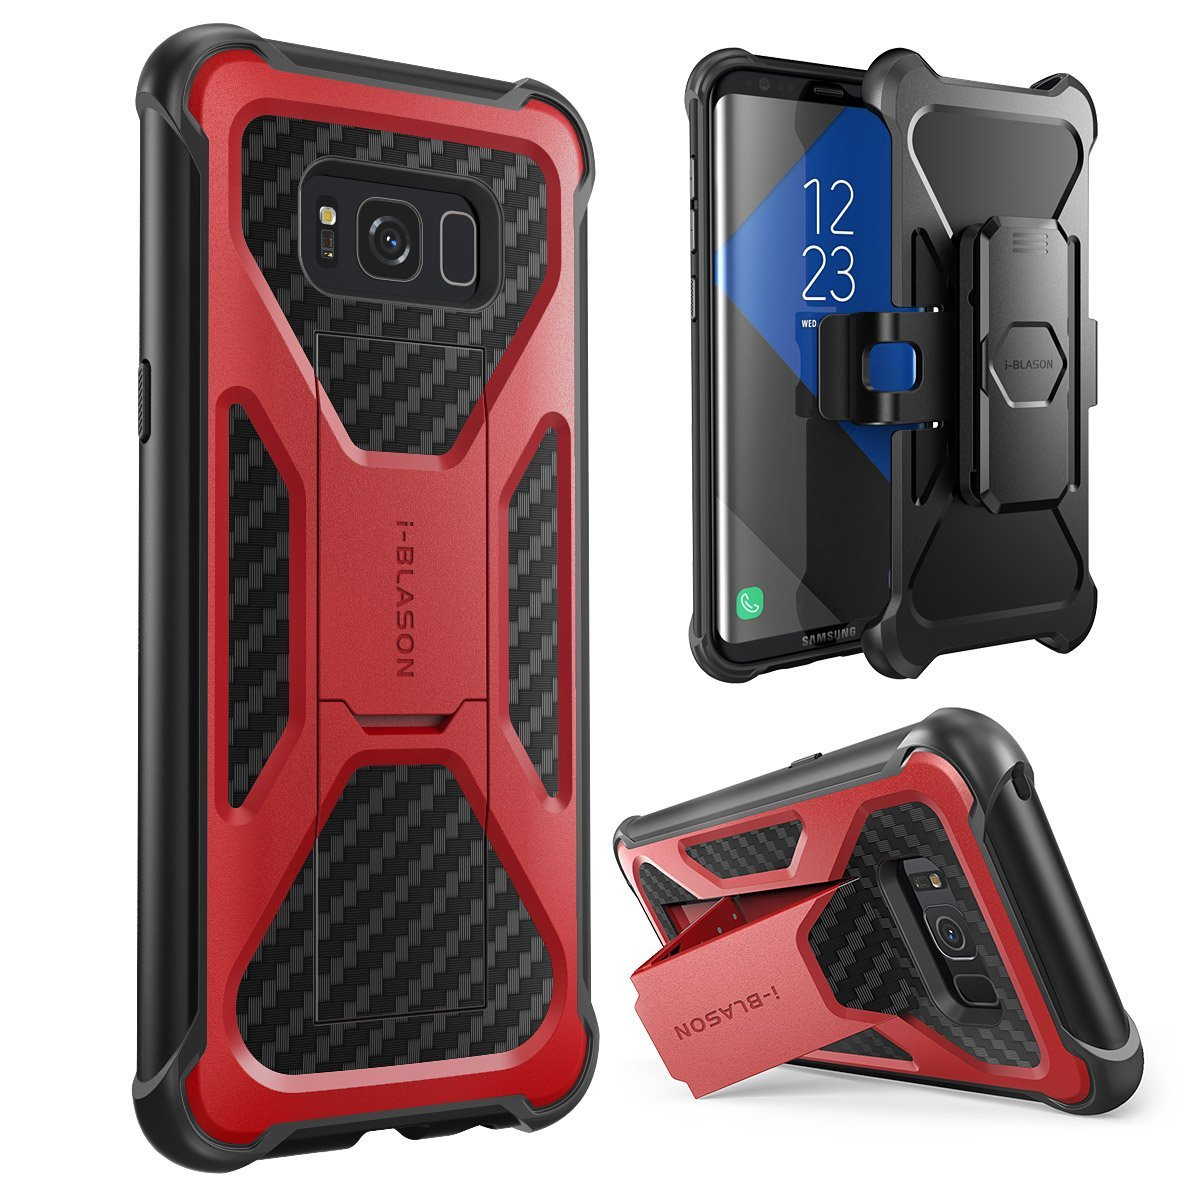 Galaxy S8 Plus Case, i-Blason, Transformer,2017 Release, Dual Layer Case with Holster Case, S8 Case, Galaxy S8 Case